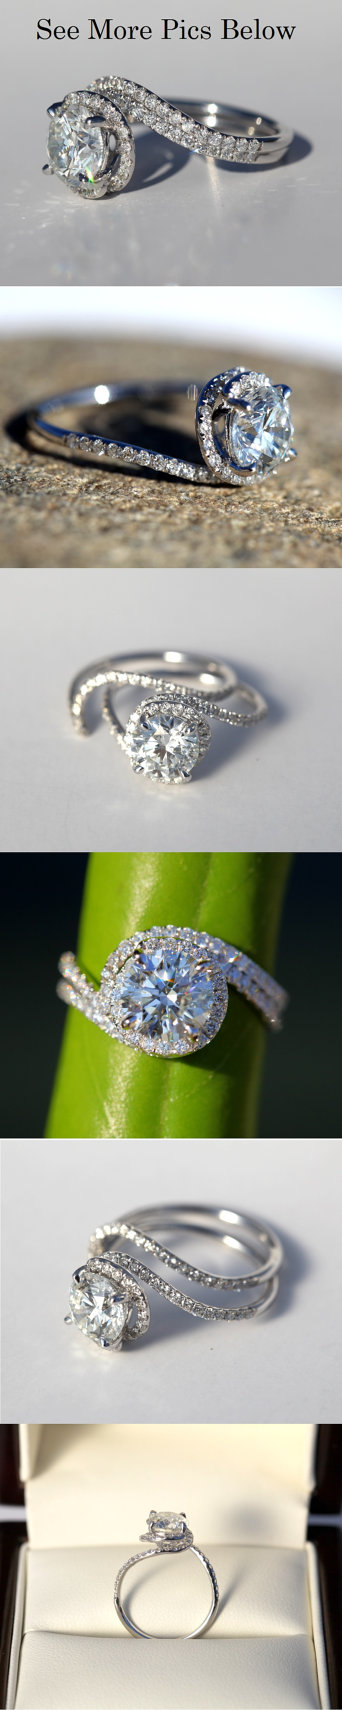 SO in love with this!!! i love the wedding band with it too!!